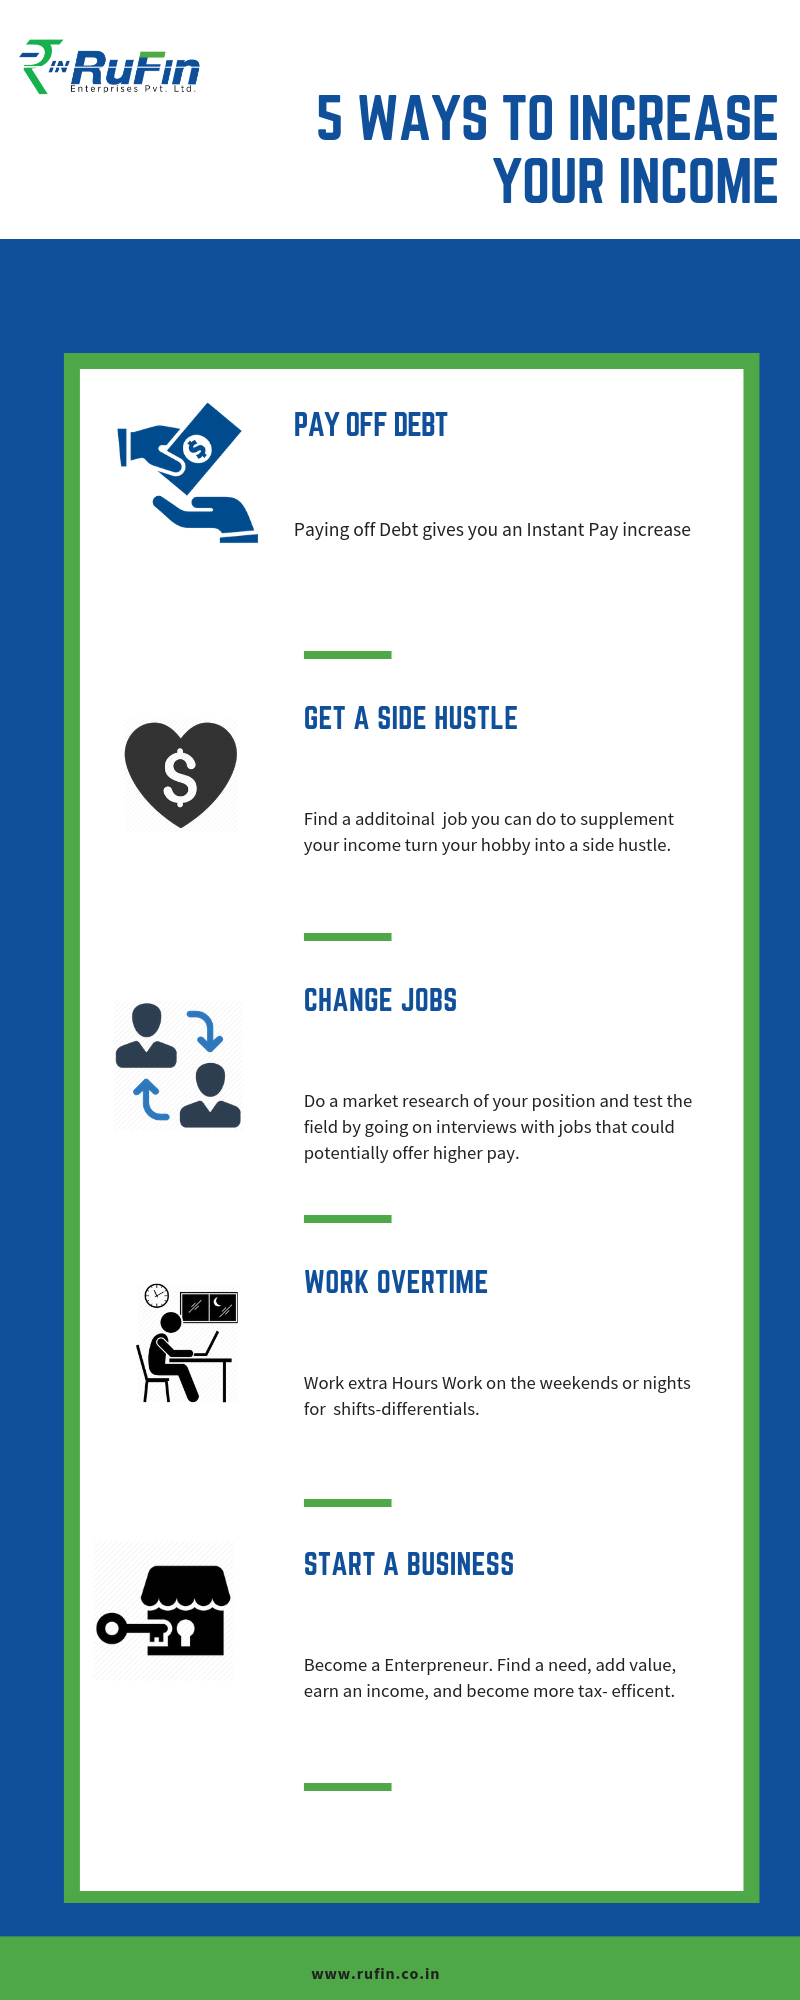 Financial Service In New Delhi 5 Ways To Increase Your Income Personal Loans Debt Payoff Credit Card Services Financial Services